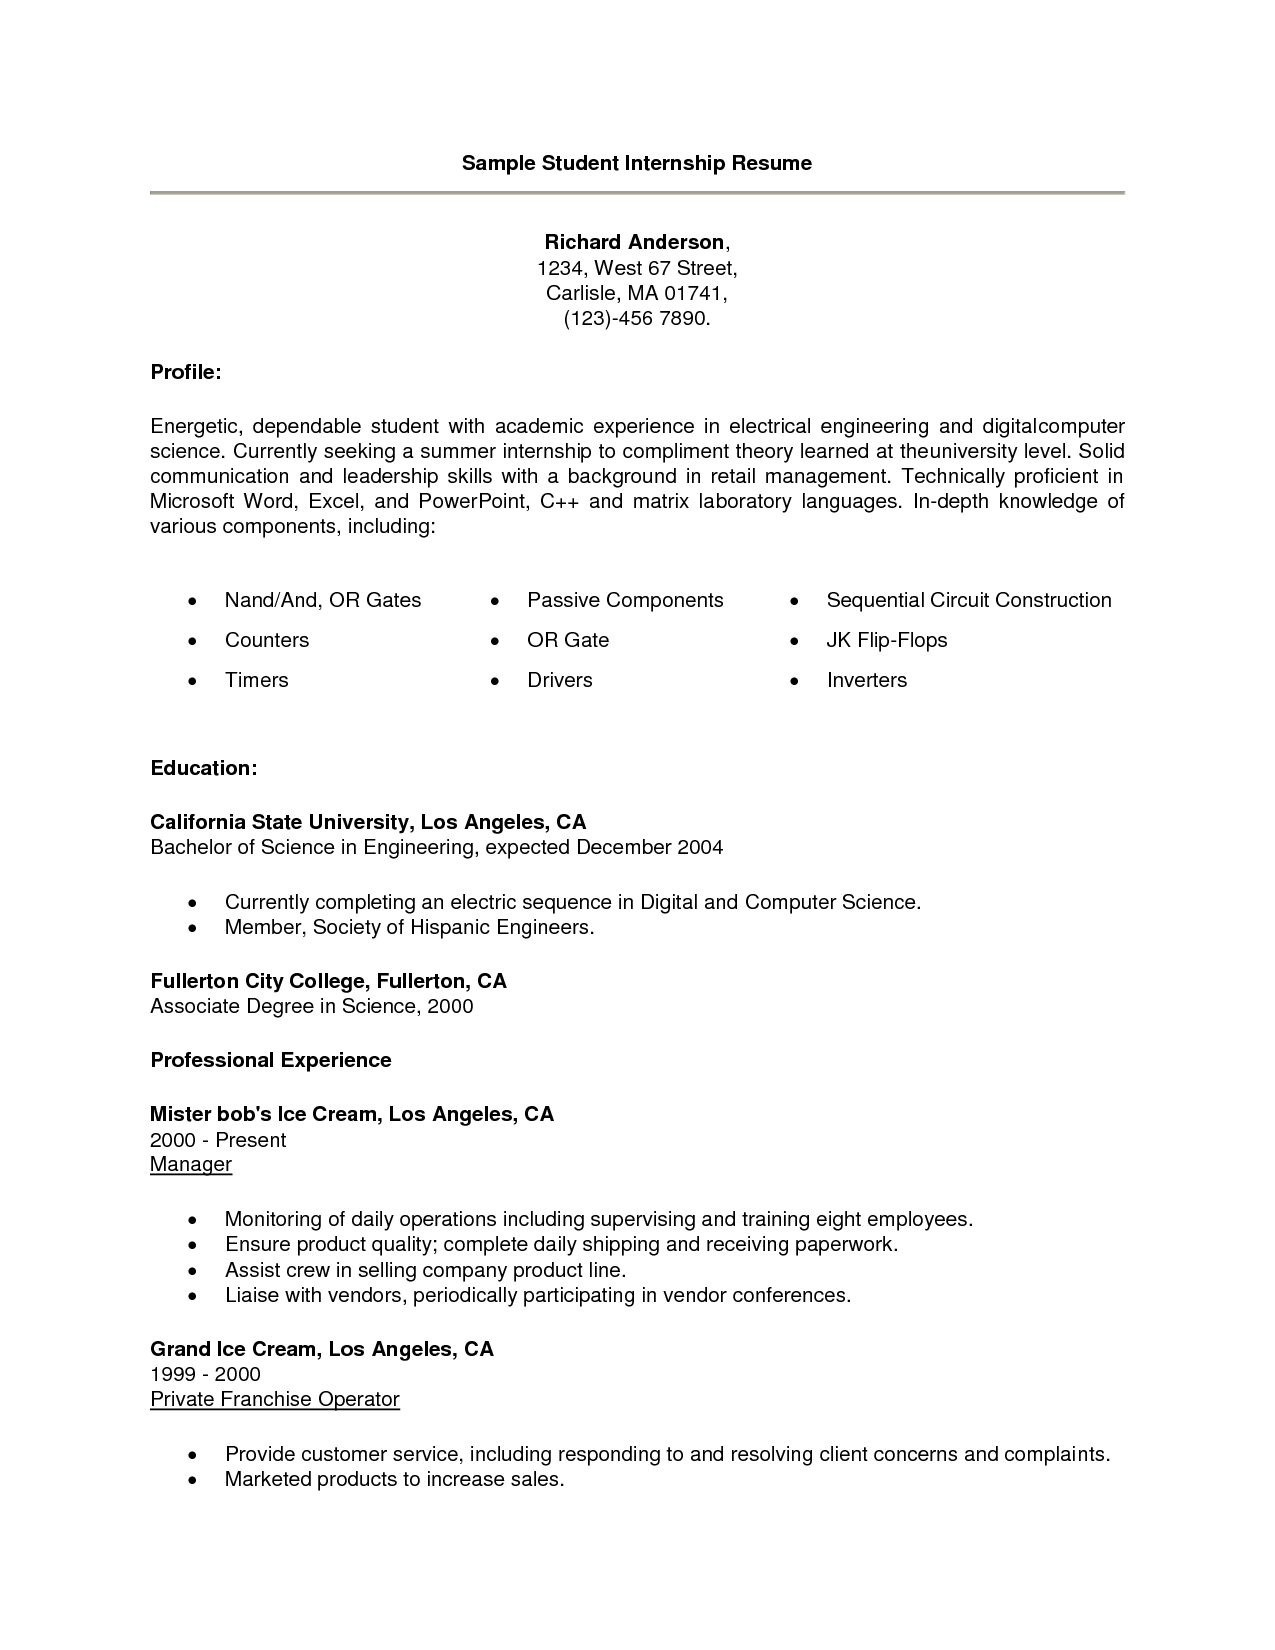 Computer Science Internship Resume - Internship Resume Template Fresh Luxury Grapher Resume Sample